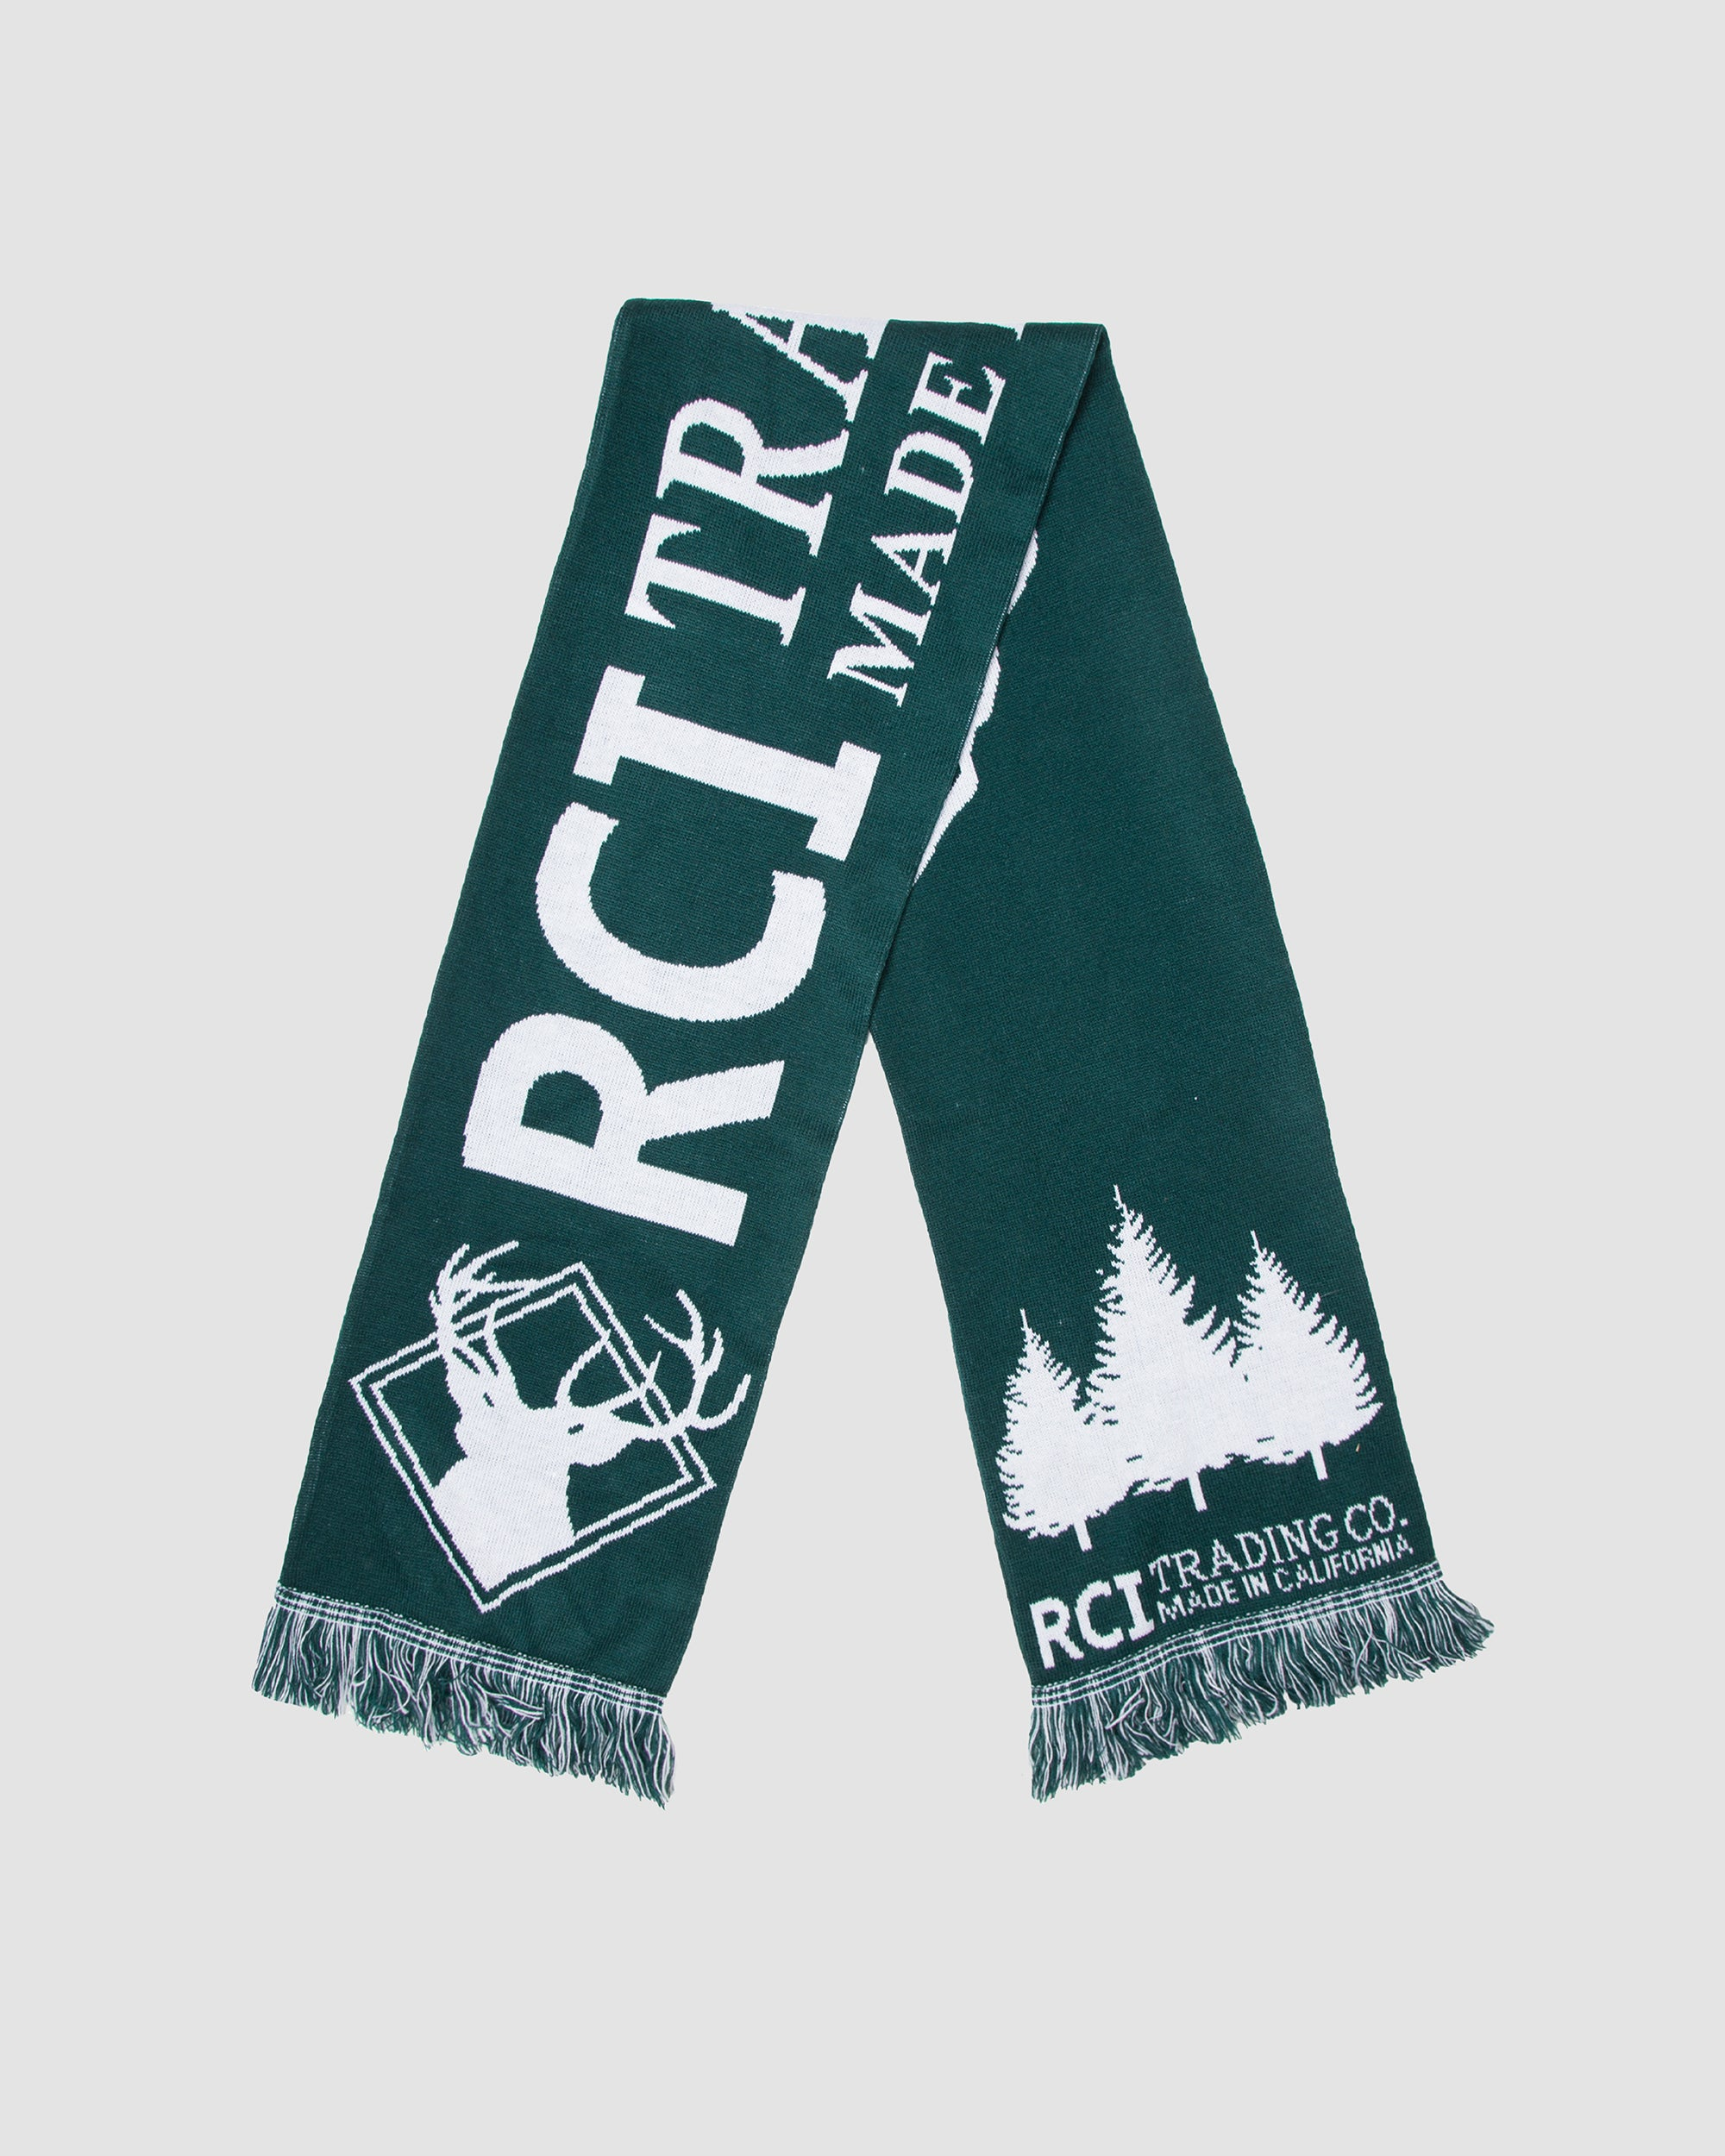 RCI Trading Co Scarf in Forest